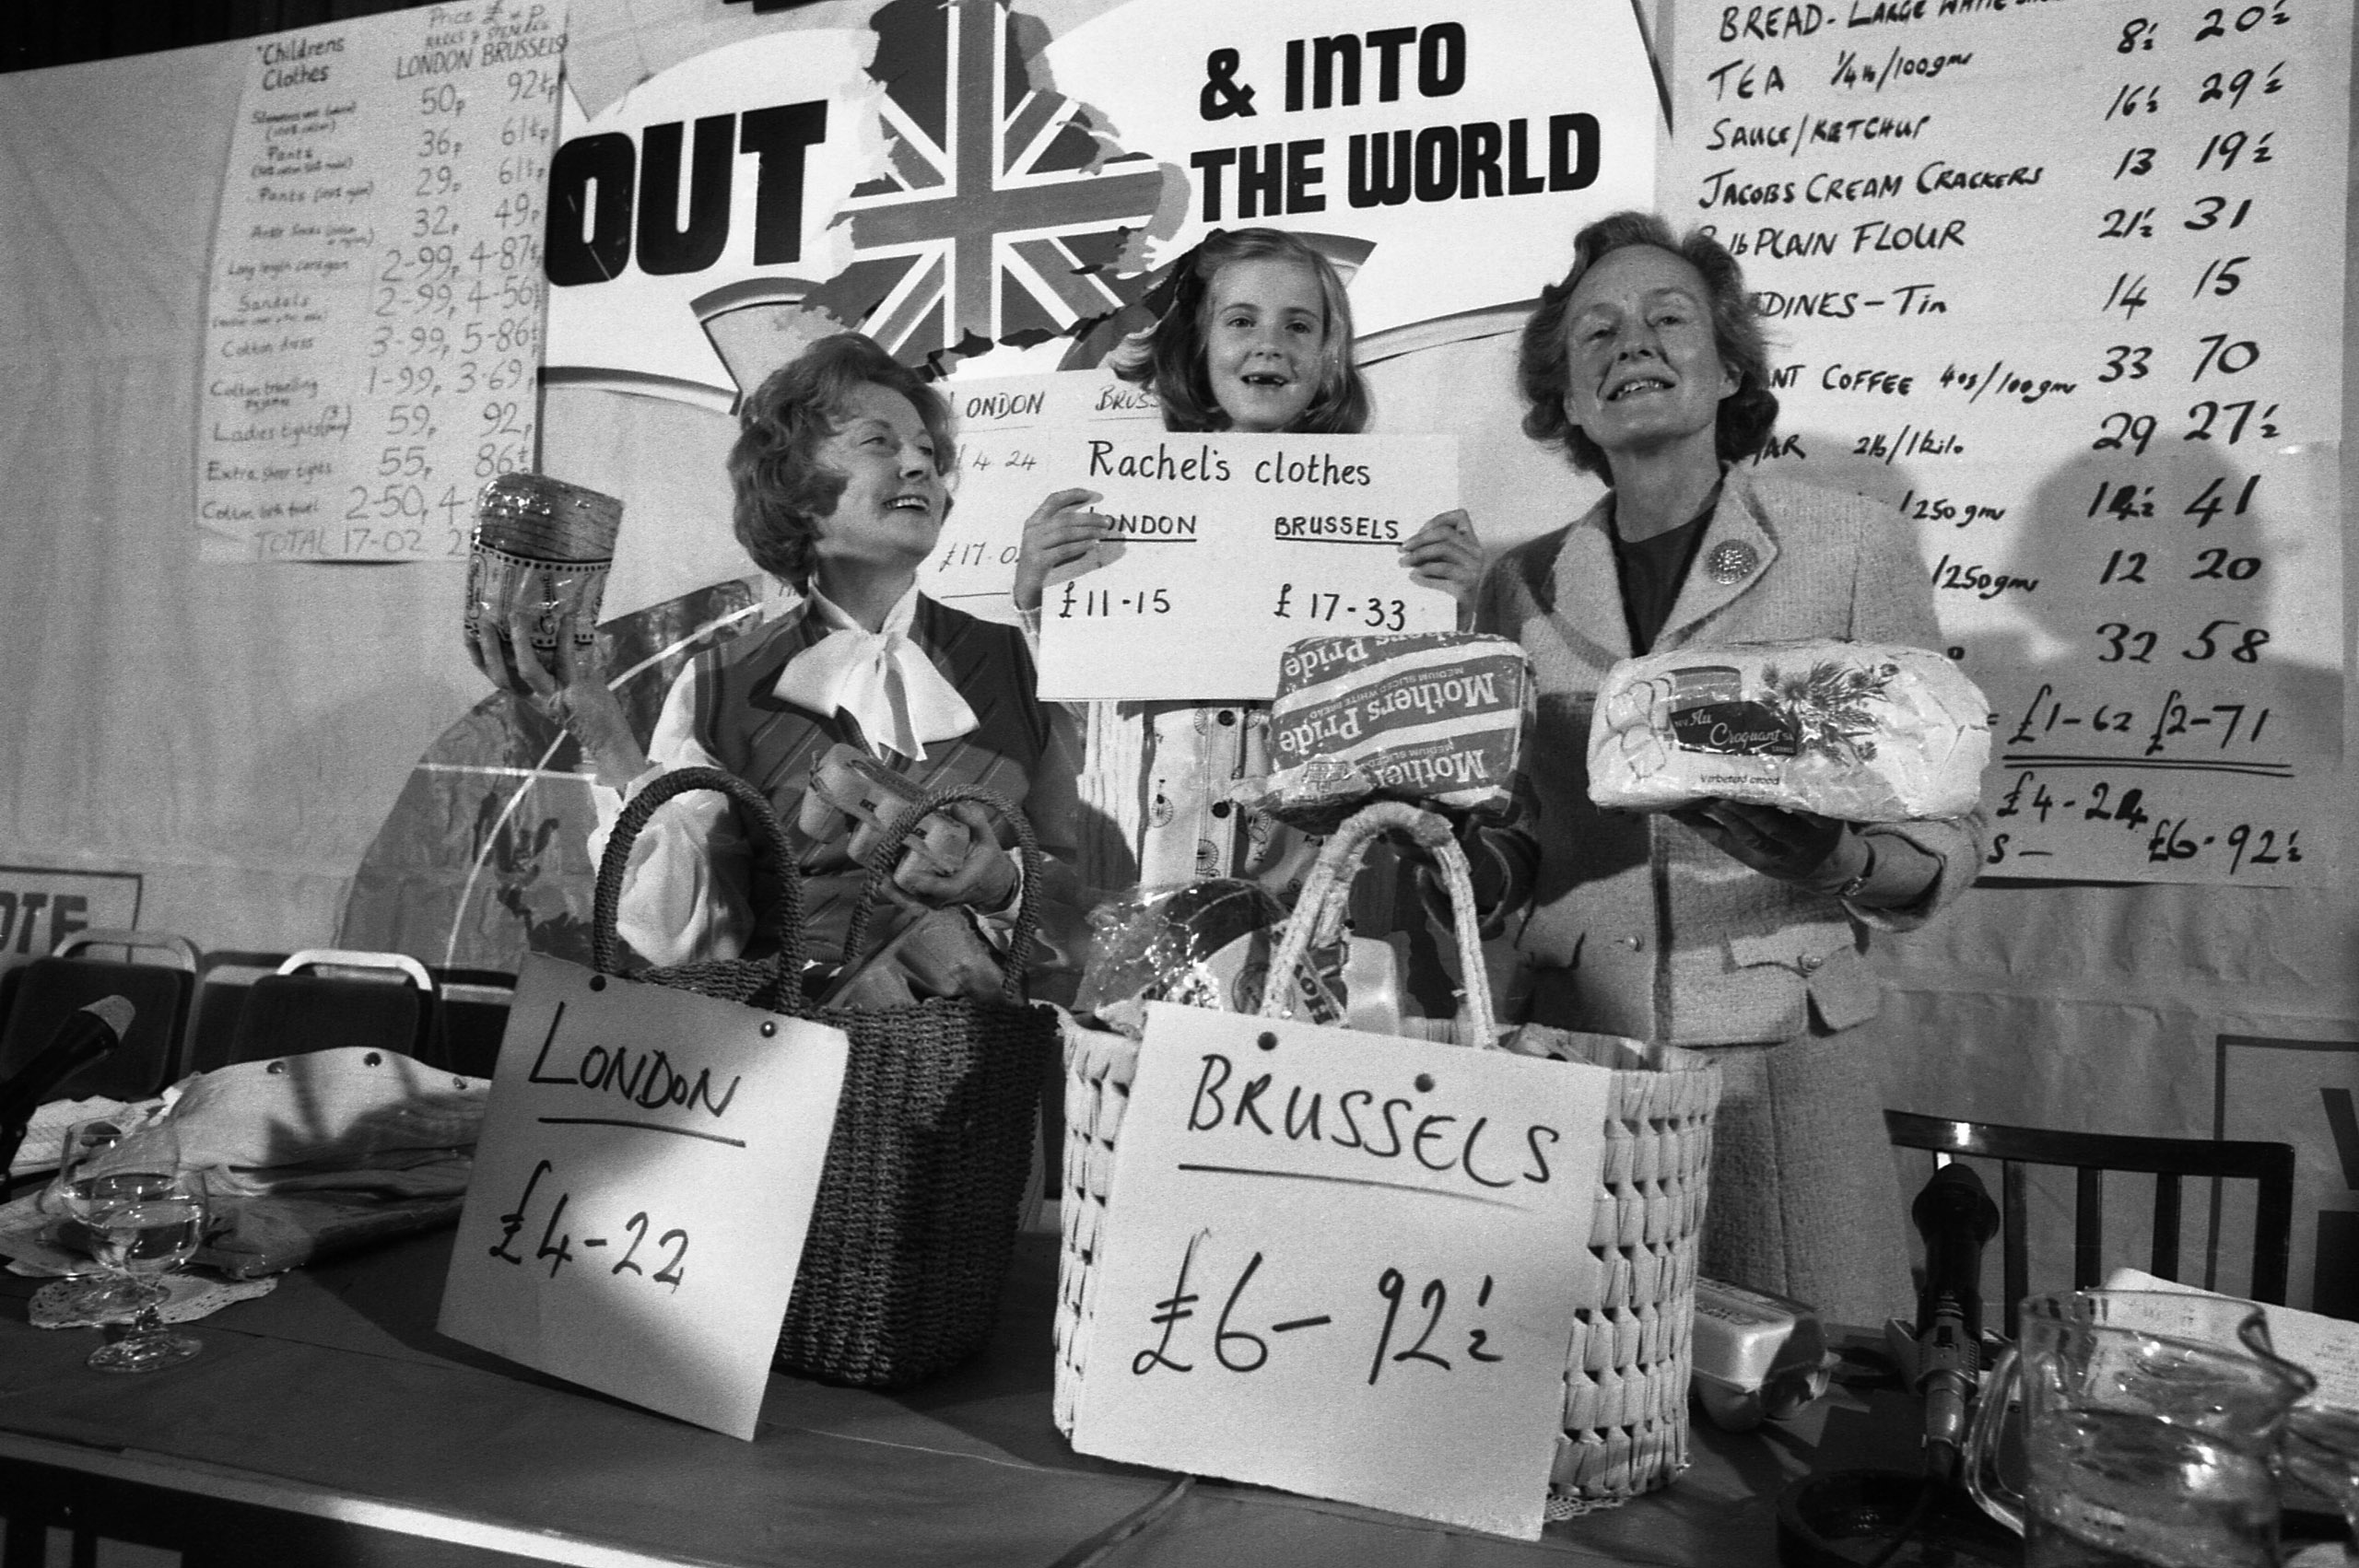 Social Services secretary, Mrs Barbara Castle, left, her 7-year-old great-niece Rachel Hilton and Mrs Joan Marten, wife of Neil Martin, Chairman of the anti-Common Marketeers (unseen) display goods they brought in London and Brussels with their retrospective prices for comparison during a press conference at the Waldorf Hotel in London , May 29, 1975